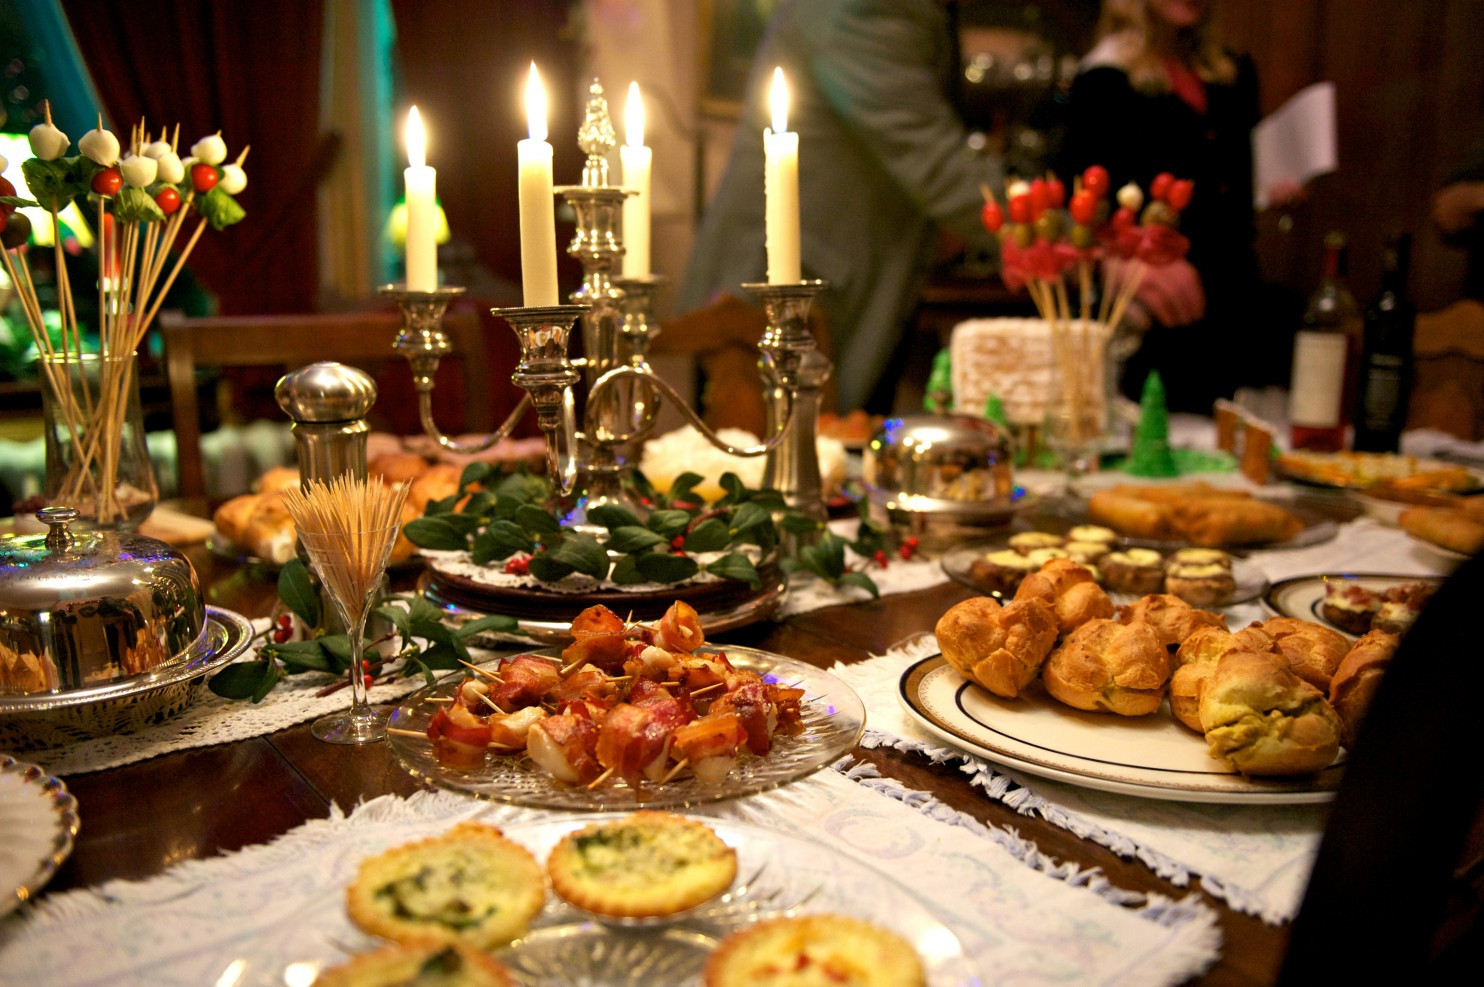 Christmas Eve Dinner Restaurants  7 Best Options For Dining Christmas Eve & Day in Dallas